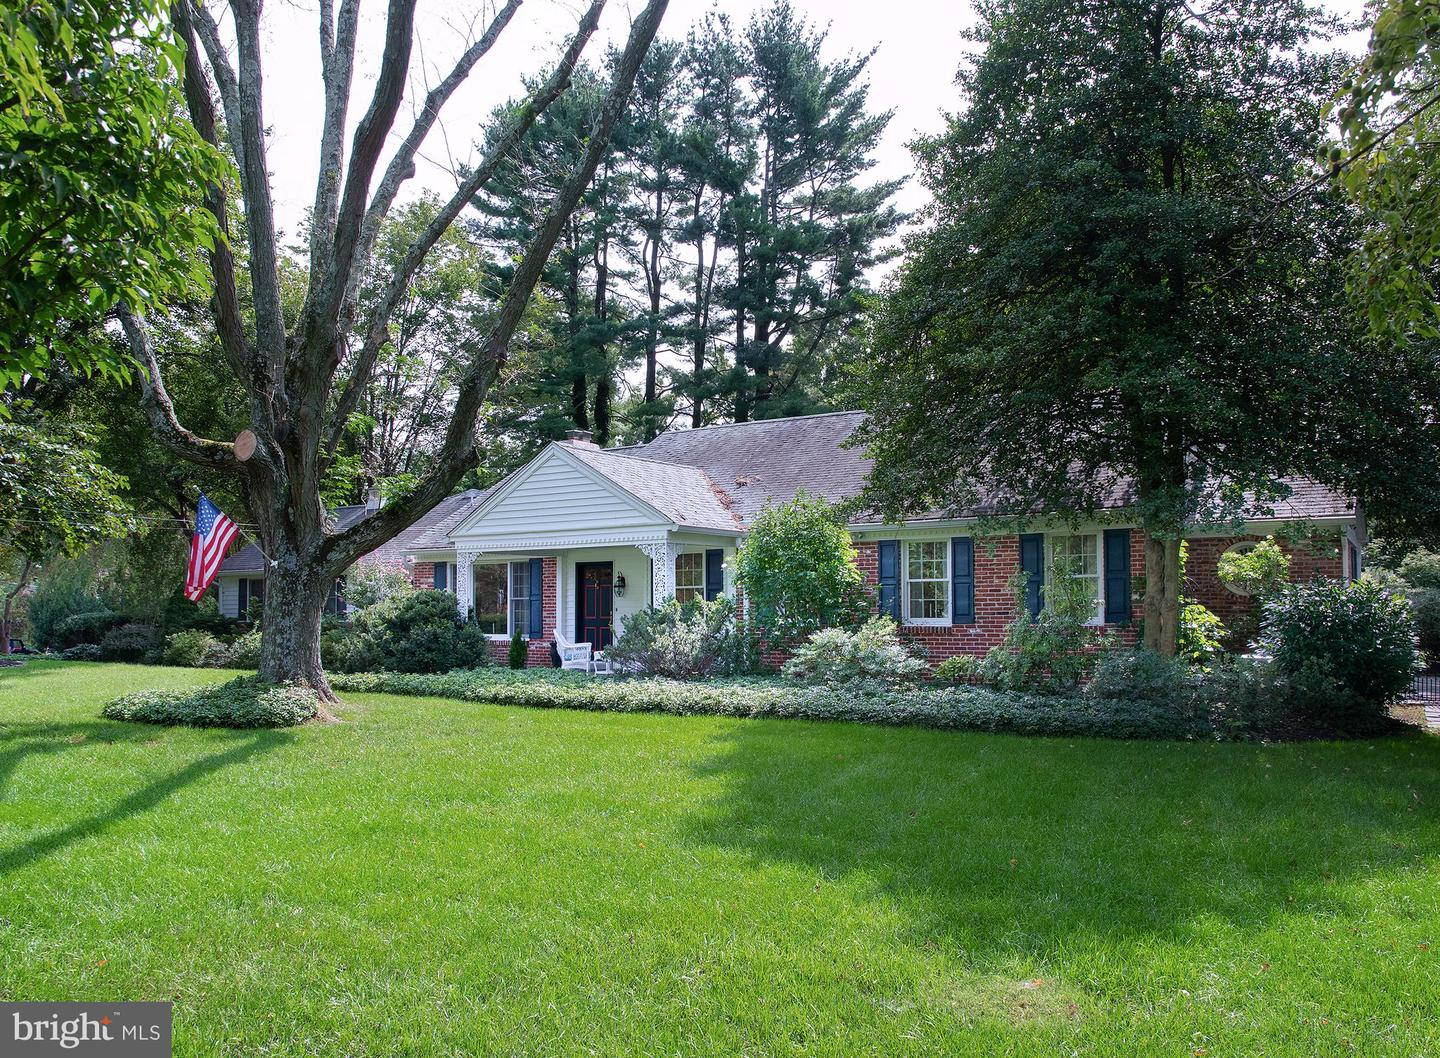 598 Cricket Lane Wayne, PA 19087